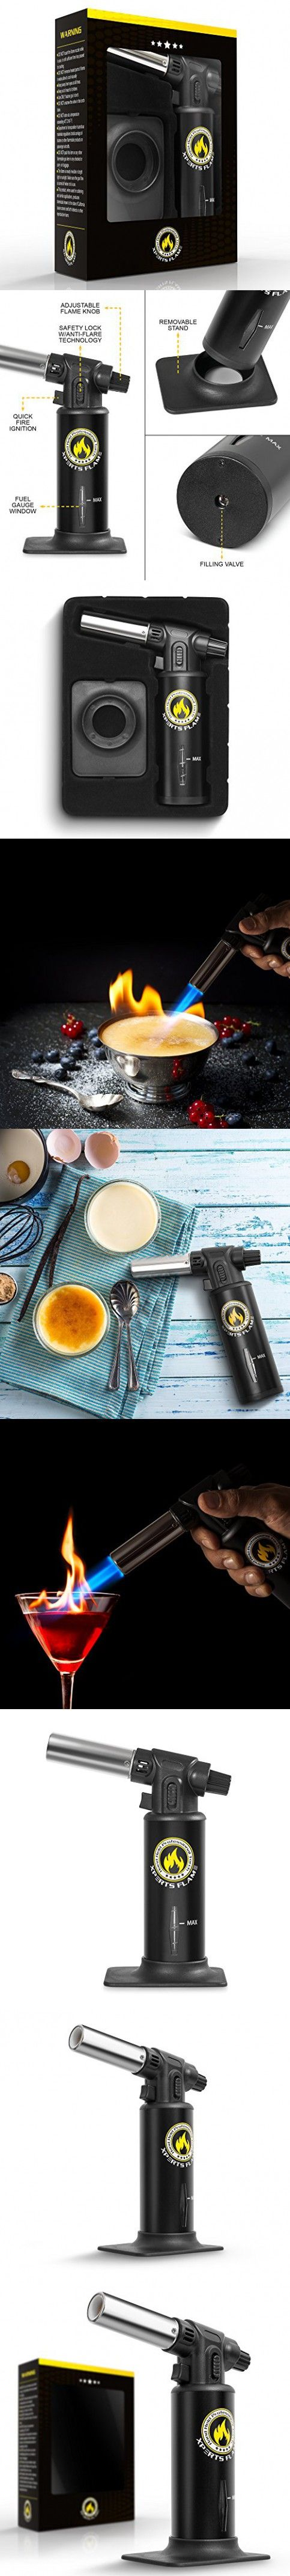 Kitchen Torch By Xpert's Flame | Best Culinary Torch For Home & Pro Chefs | Blow Torch For Crème Brulee | Safety Lock & Adjustable Flame | Free Bonus: Stand & BBQ Recipe E-Book|